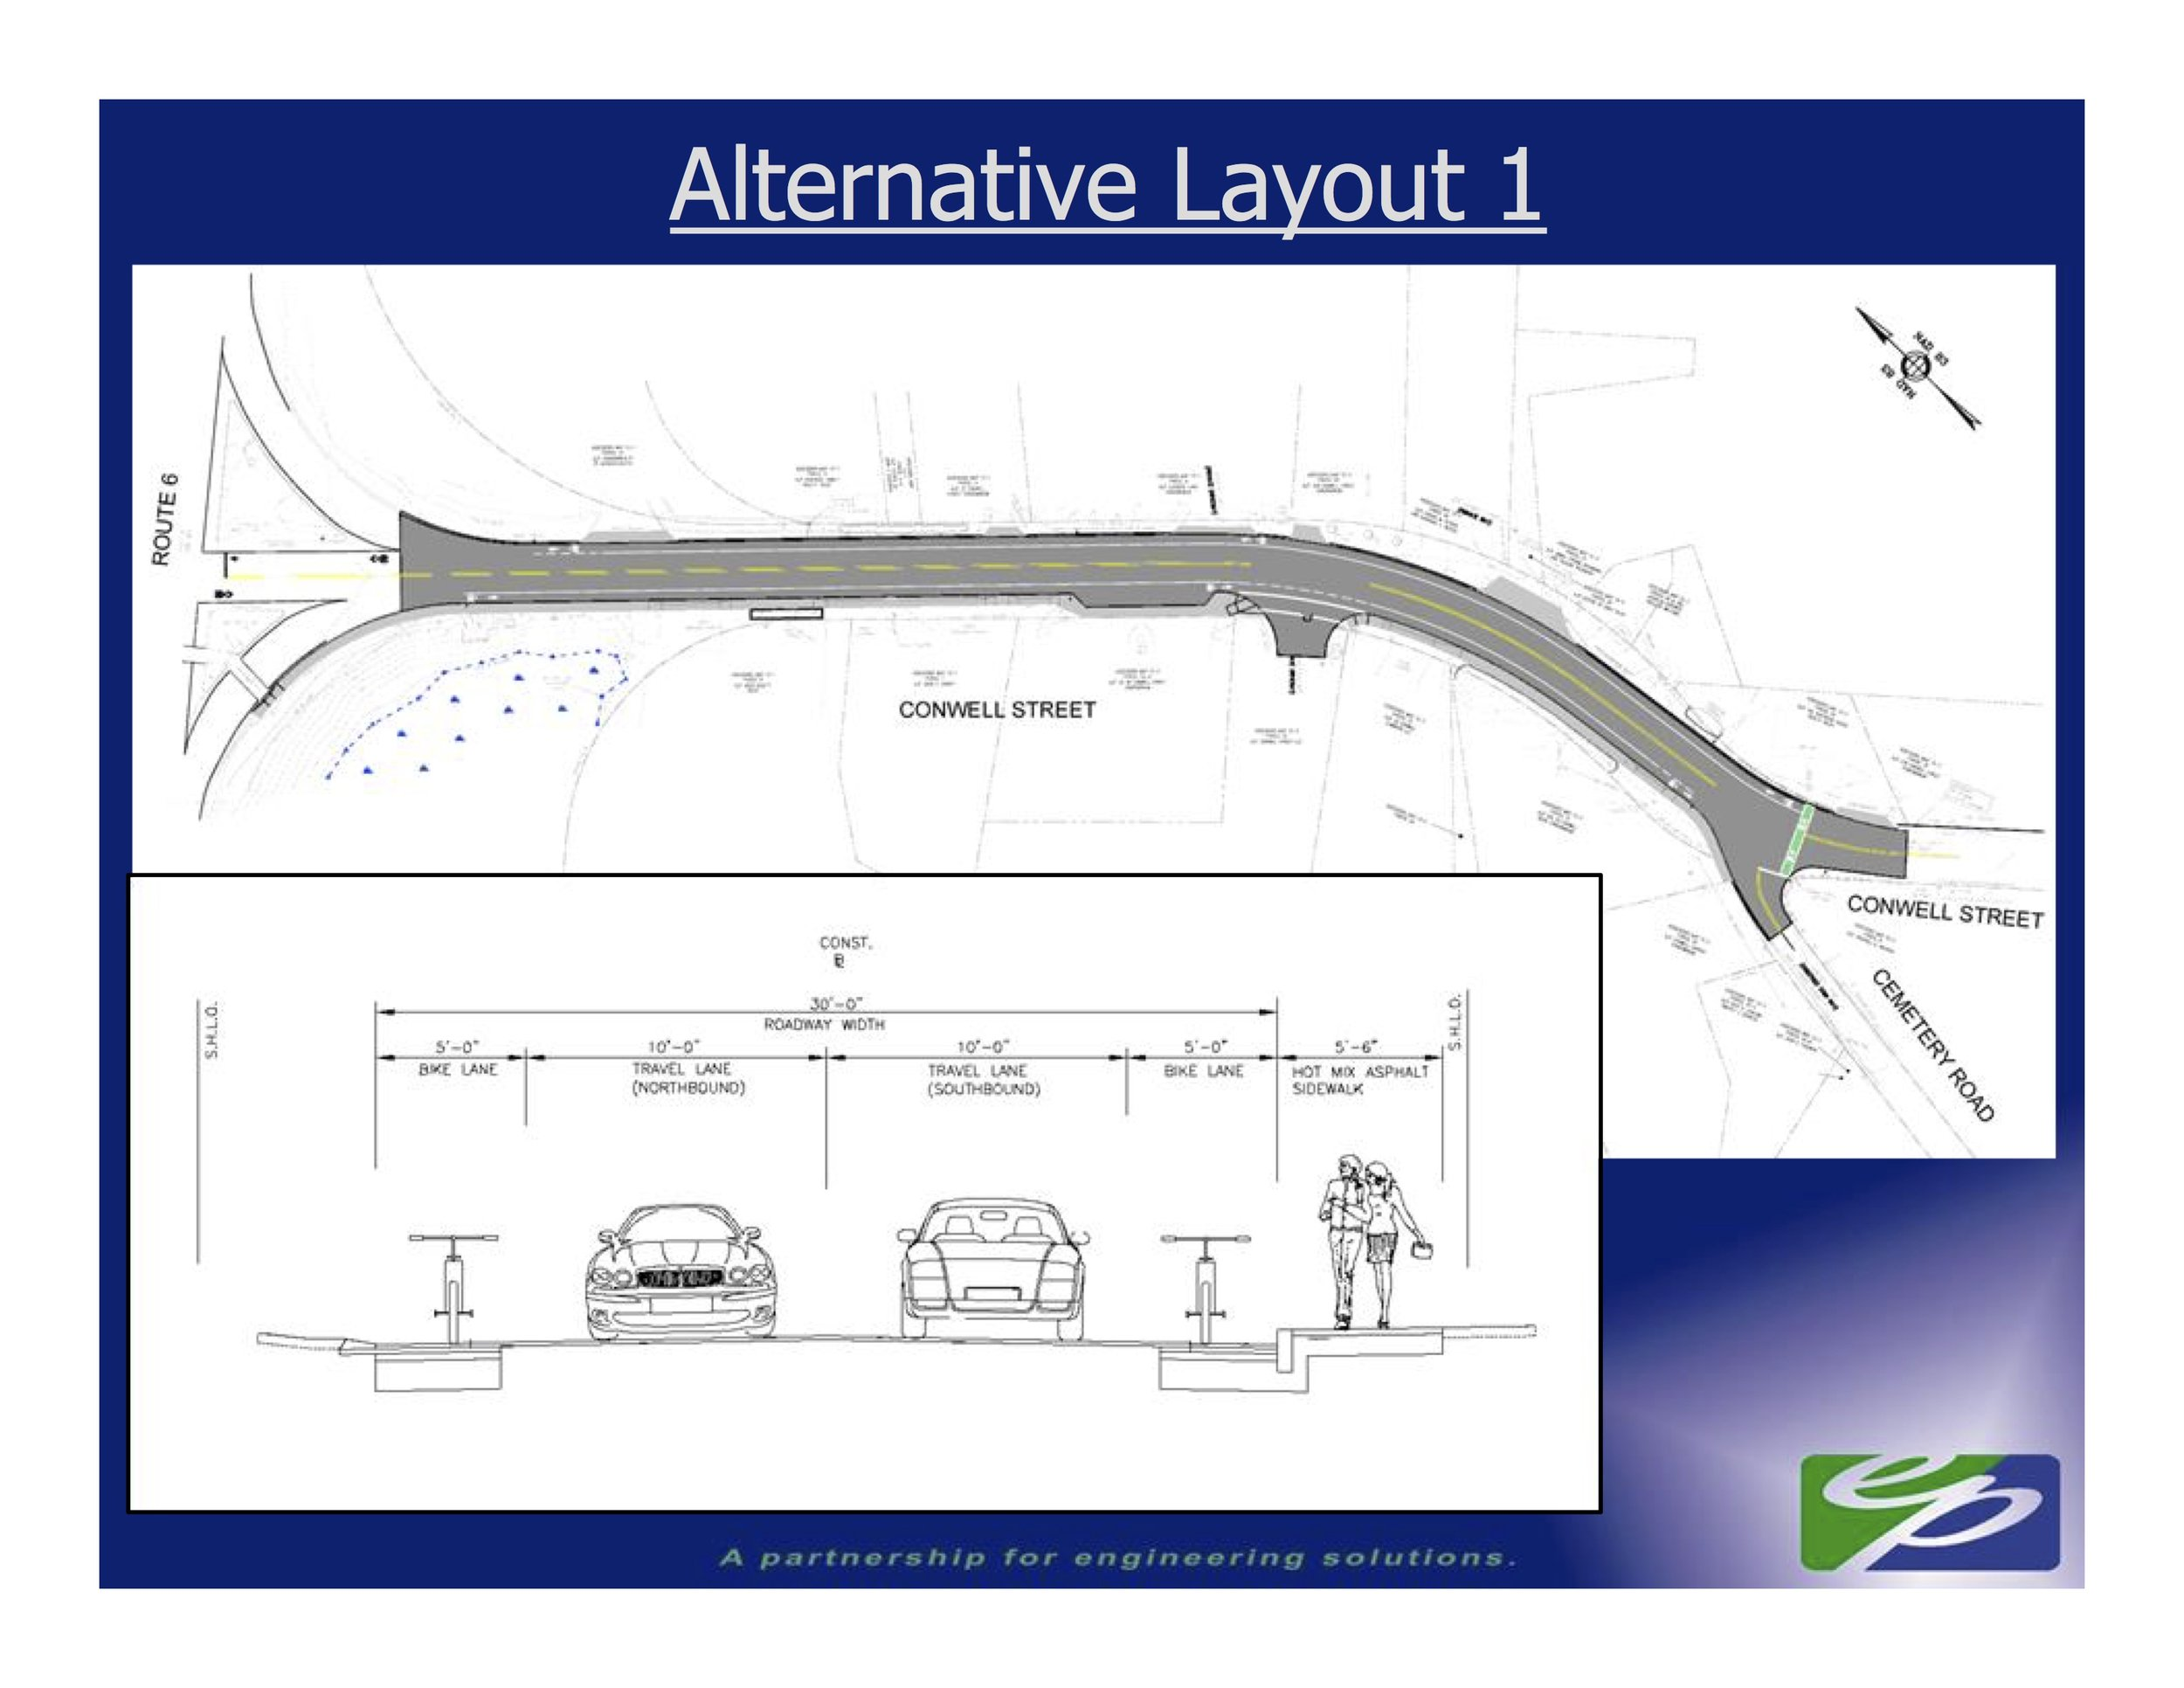 The initial design for adding bike lanes and a sidewalk to a section of Conwell Street in Provincetown.